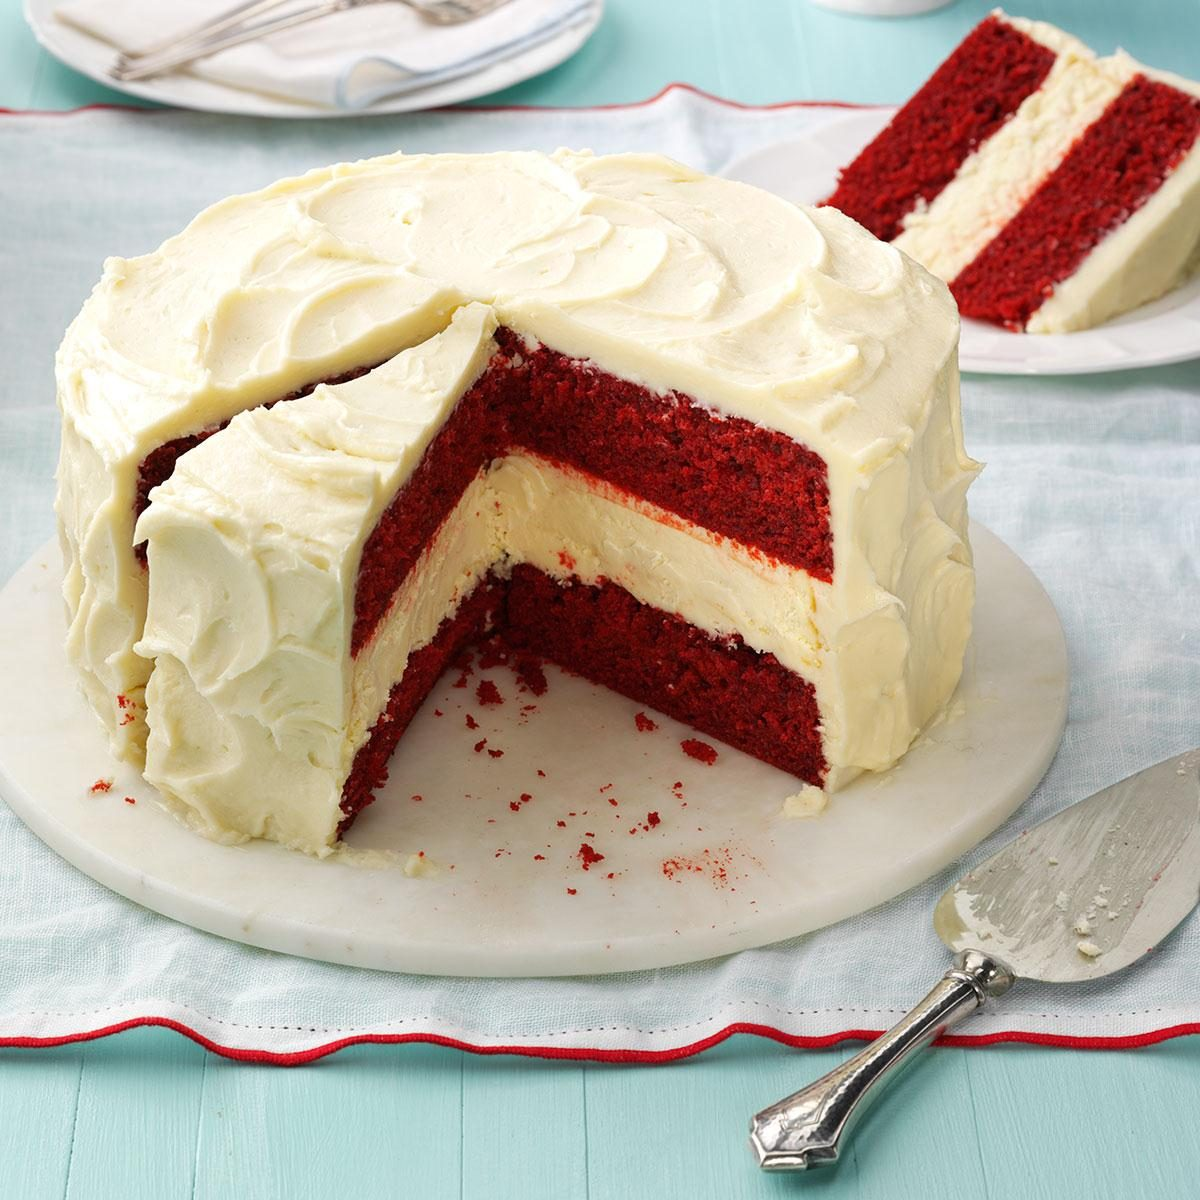 Inspired by: The Cheesecake Factory Ultimate Red Velvet Cake Cheesecake